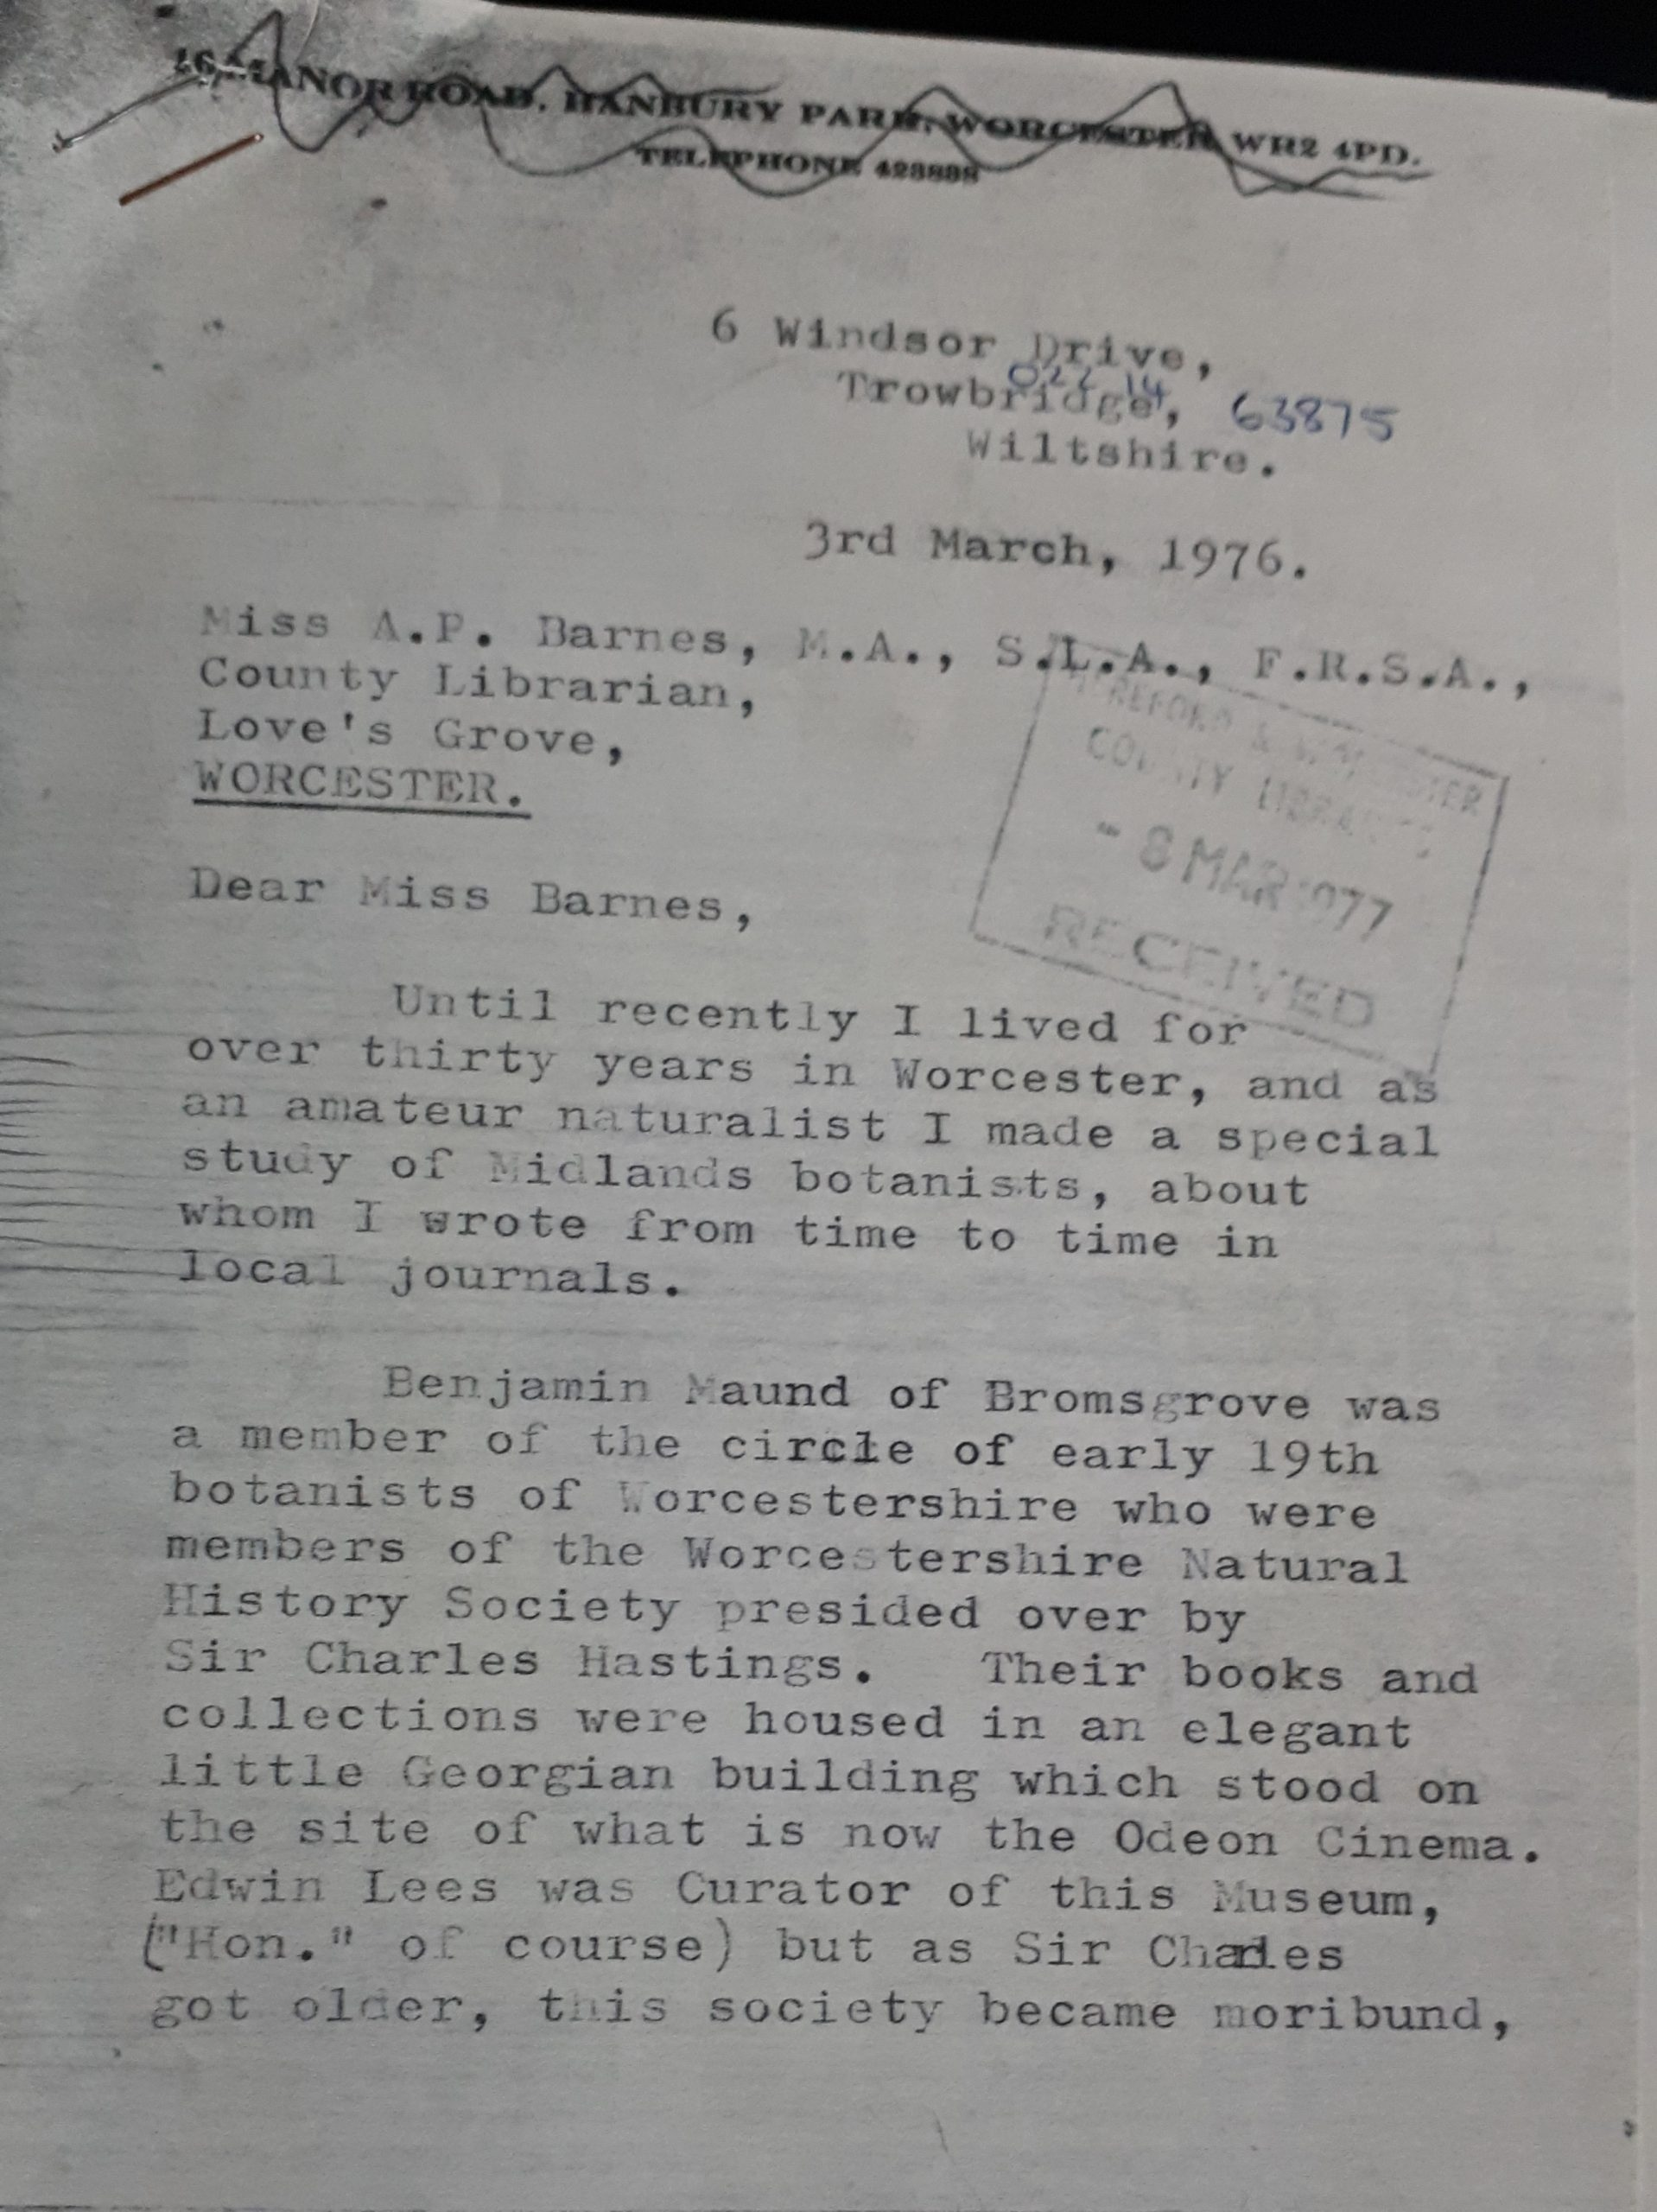 First page of the letter of Mrs Mary Jones to the County Librarian dated 3rd March 1976